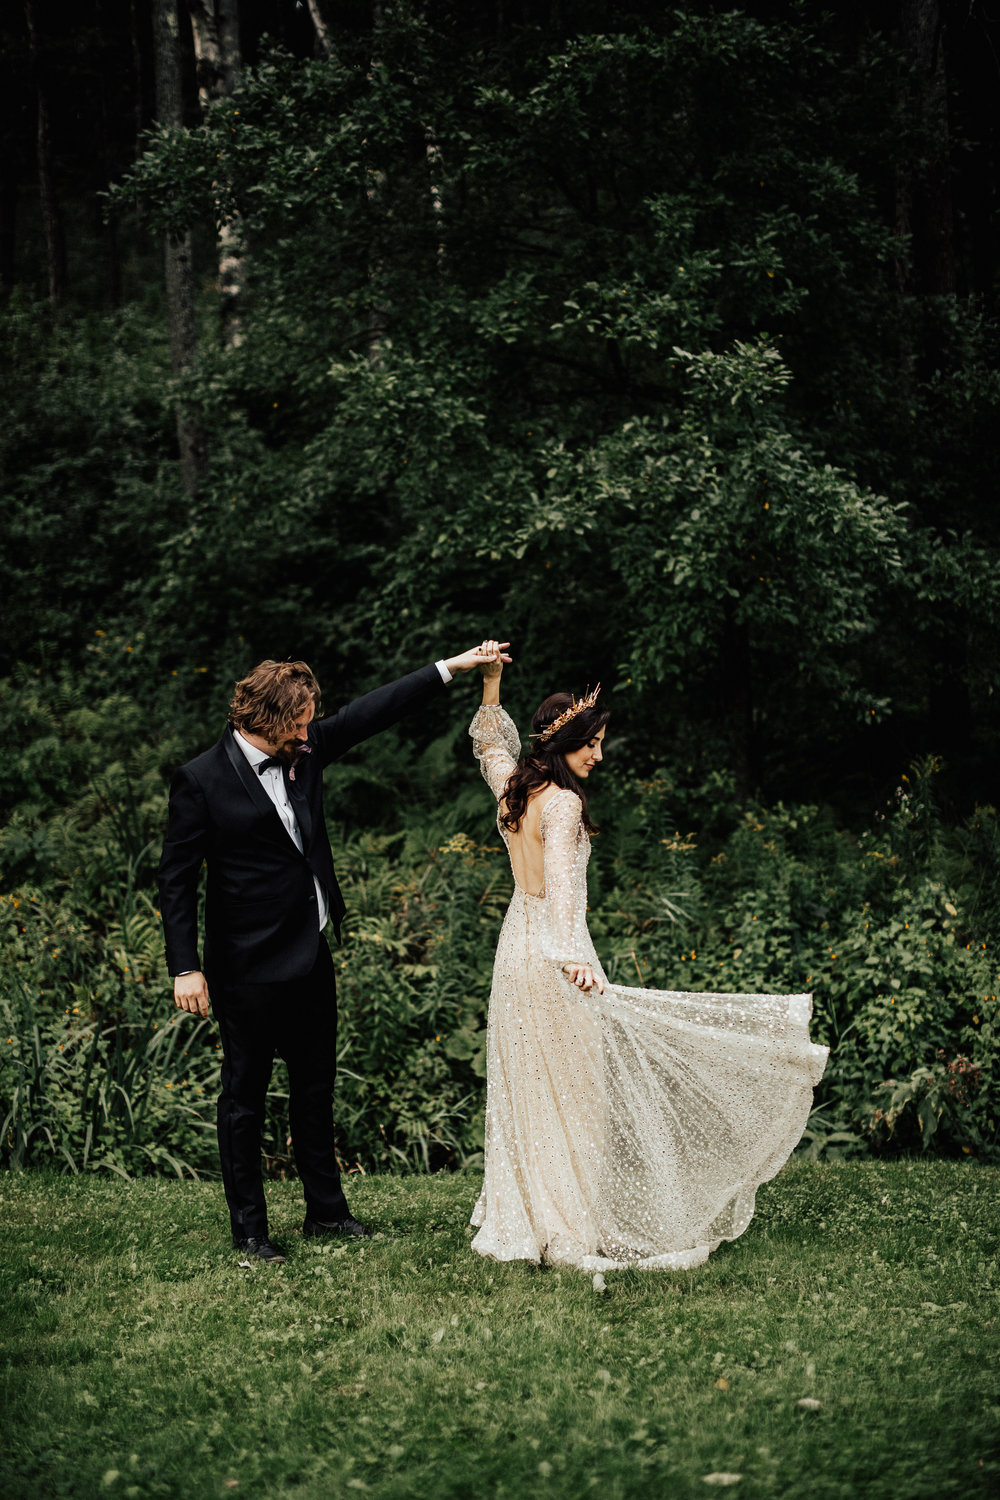 Gothic Fairytale Wedding Inspiration